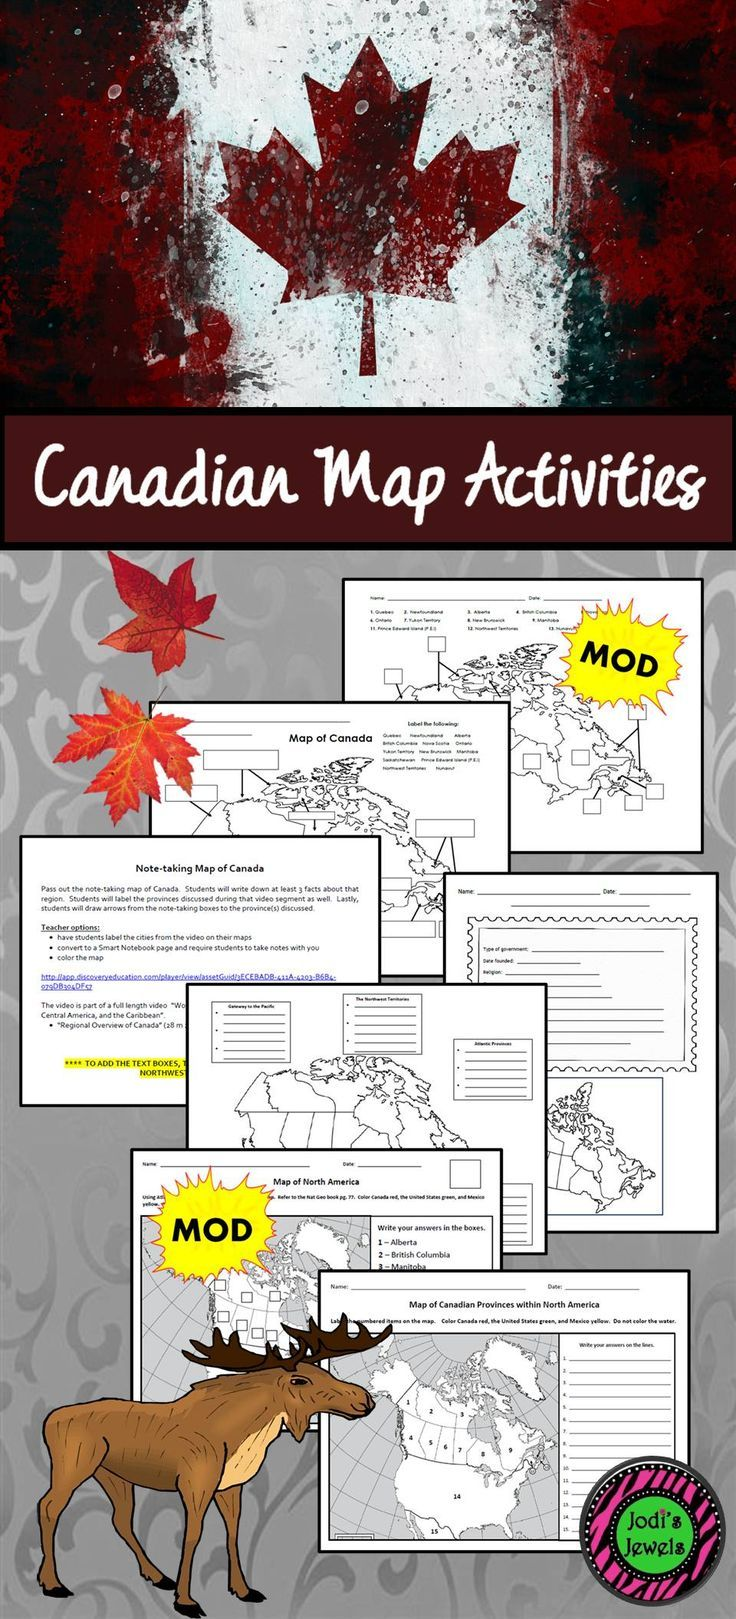 Enhance your Canadian unit with these map activities from Jodi's Jewels. Included are political color and label maps, a note-taking map with a video reference, and a postcard map. MODIFIED maps are available. Visit Jodi's Jewels today!